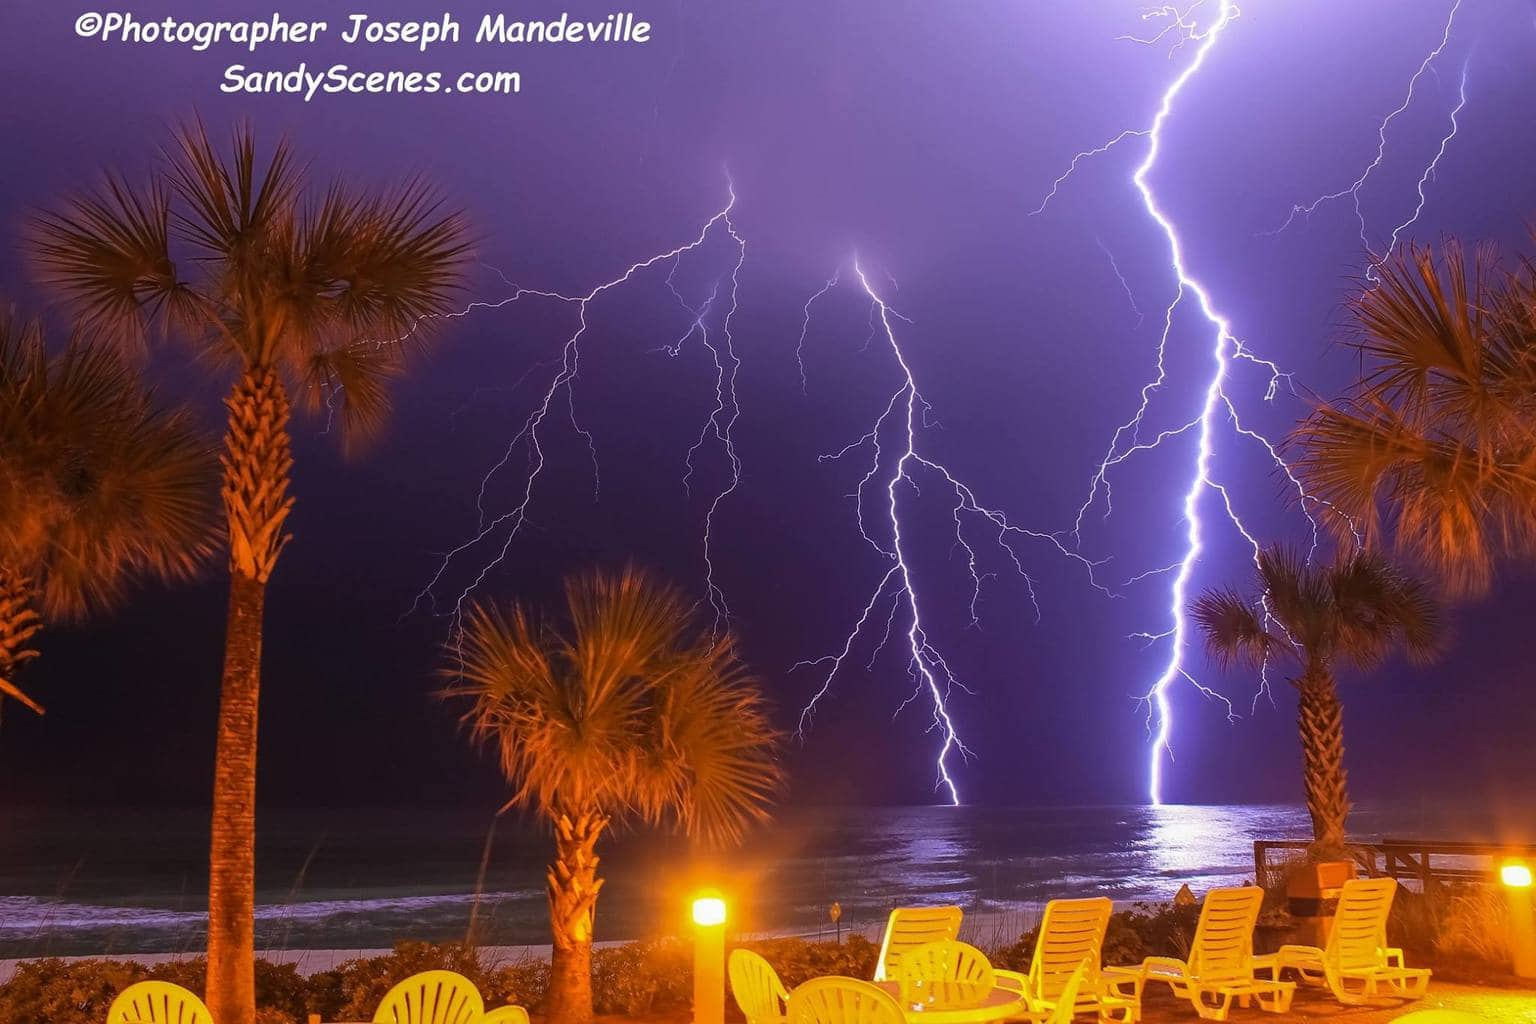 2 years ago winter lightning looked like this...today you can't buy a lightning flash! Taken 2/24/2013 in Panama City Beach, Florida